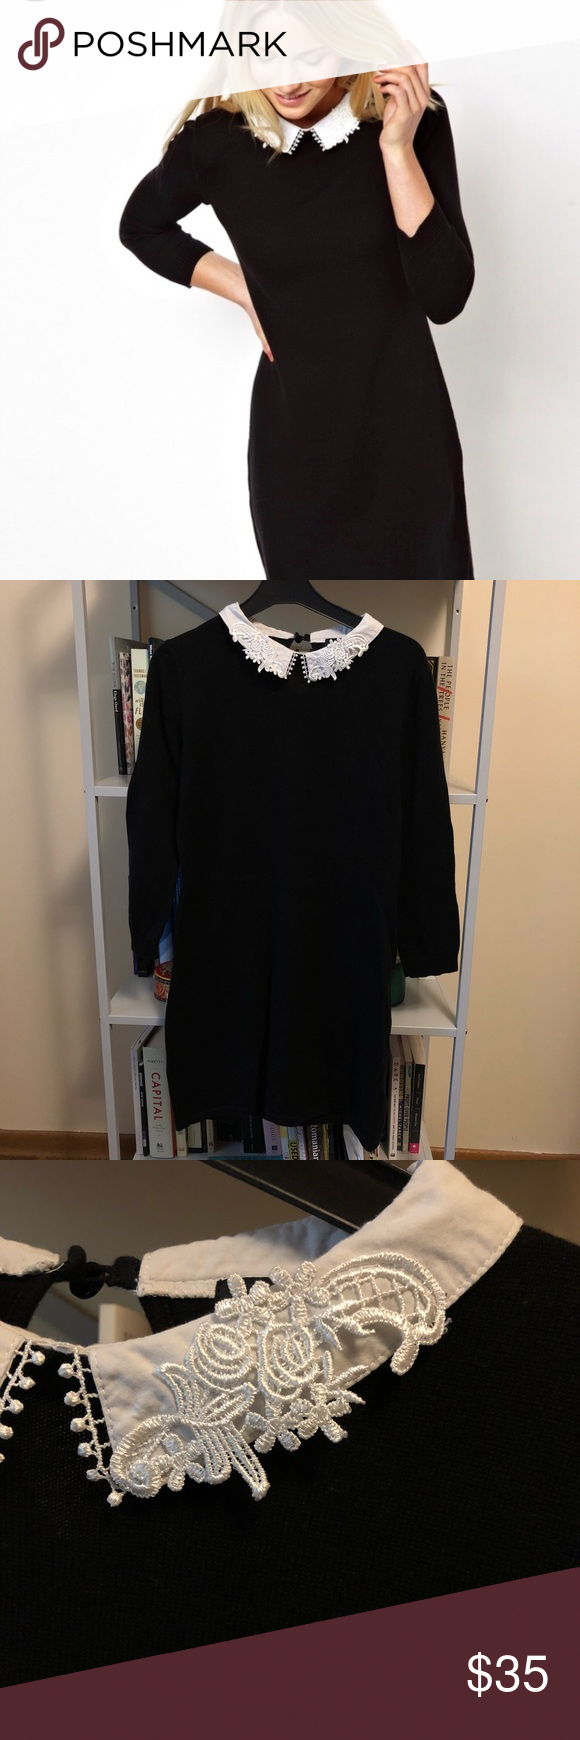 4e7516789740 ASOS dress with lace collar Knit black dress from ASOS with white collar  and lace trimmings. Fastens with button at back of neck. Sleeves are 3/4  length.